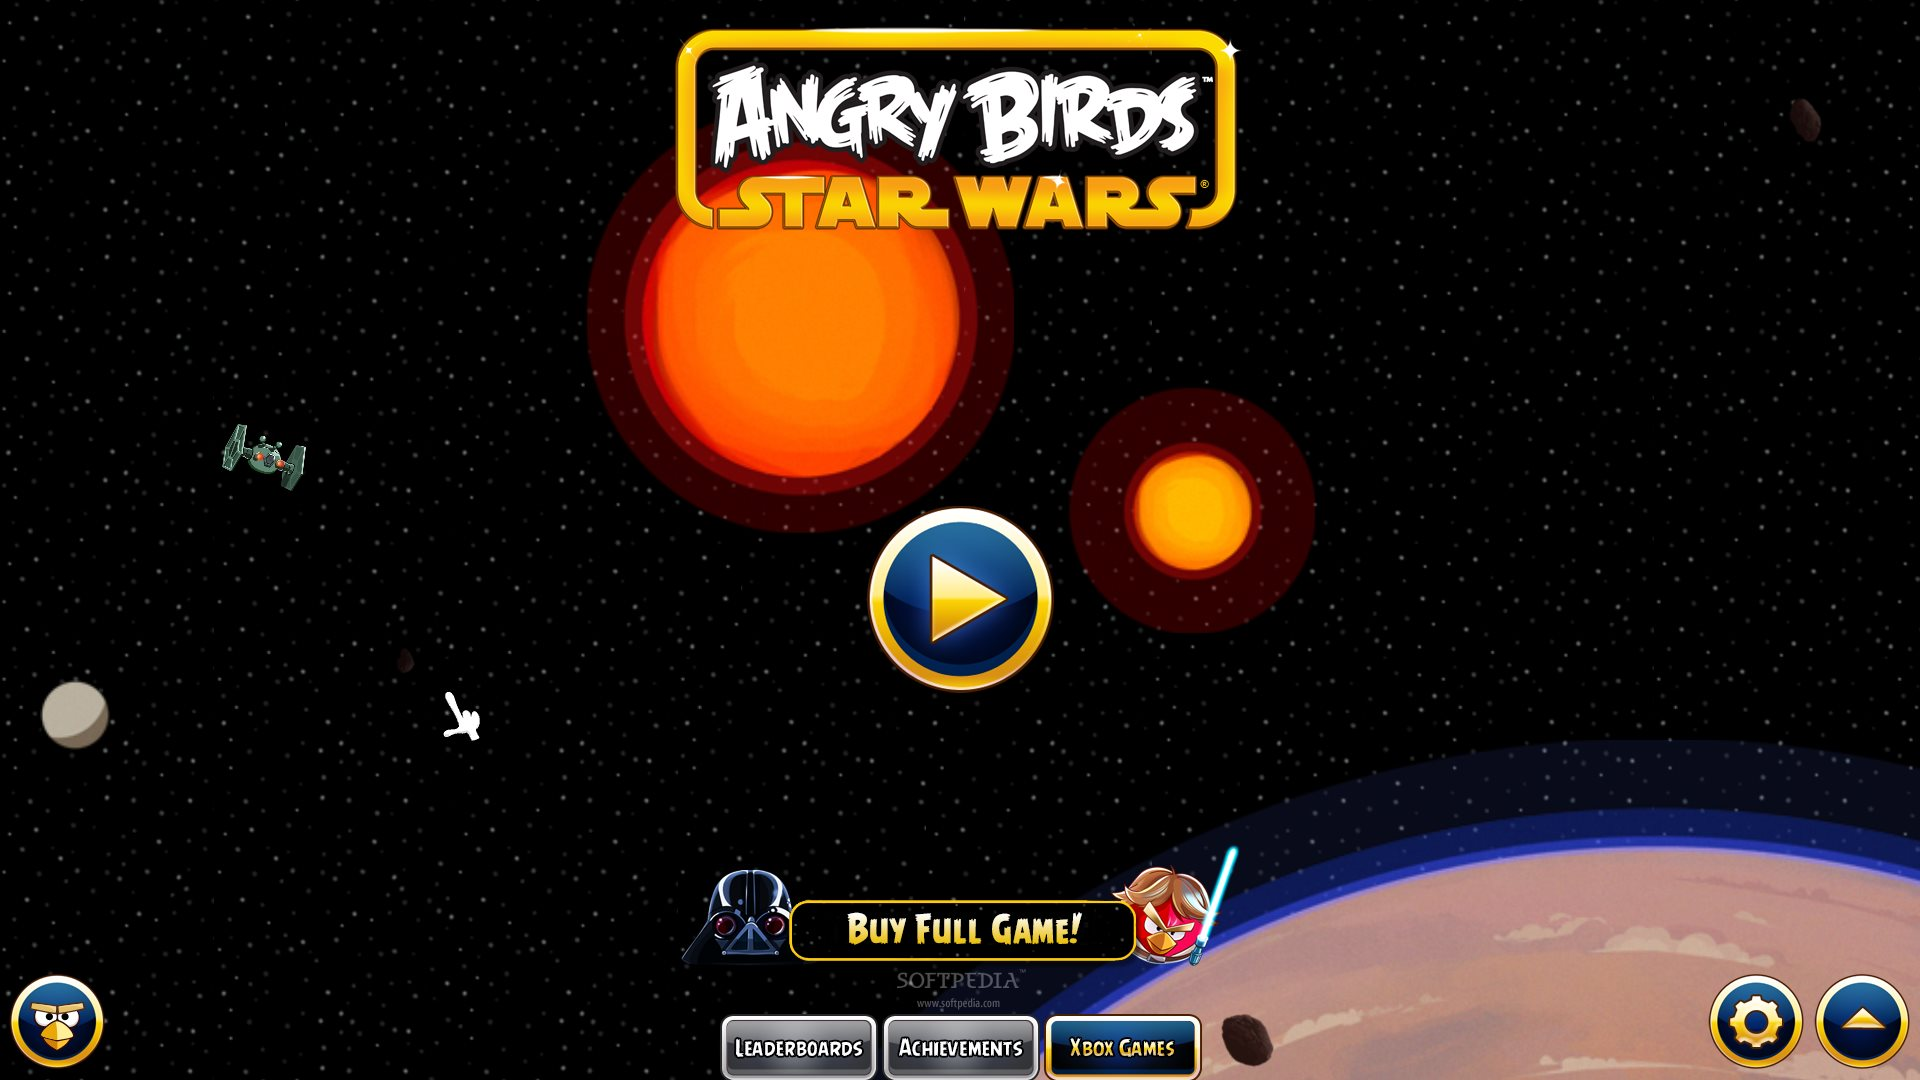 Angry birds star wars for windows 8 download - Angry birds star wars 8 ...